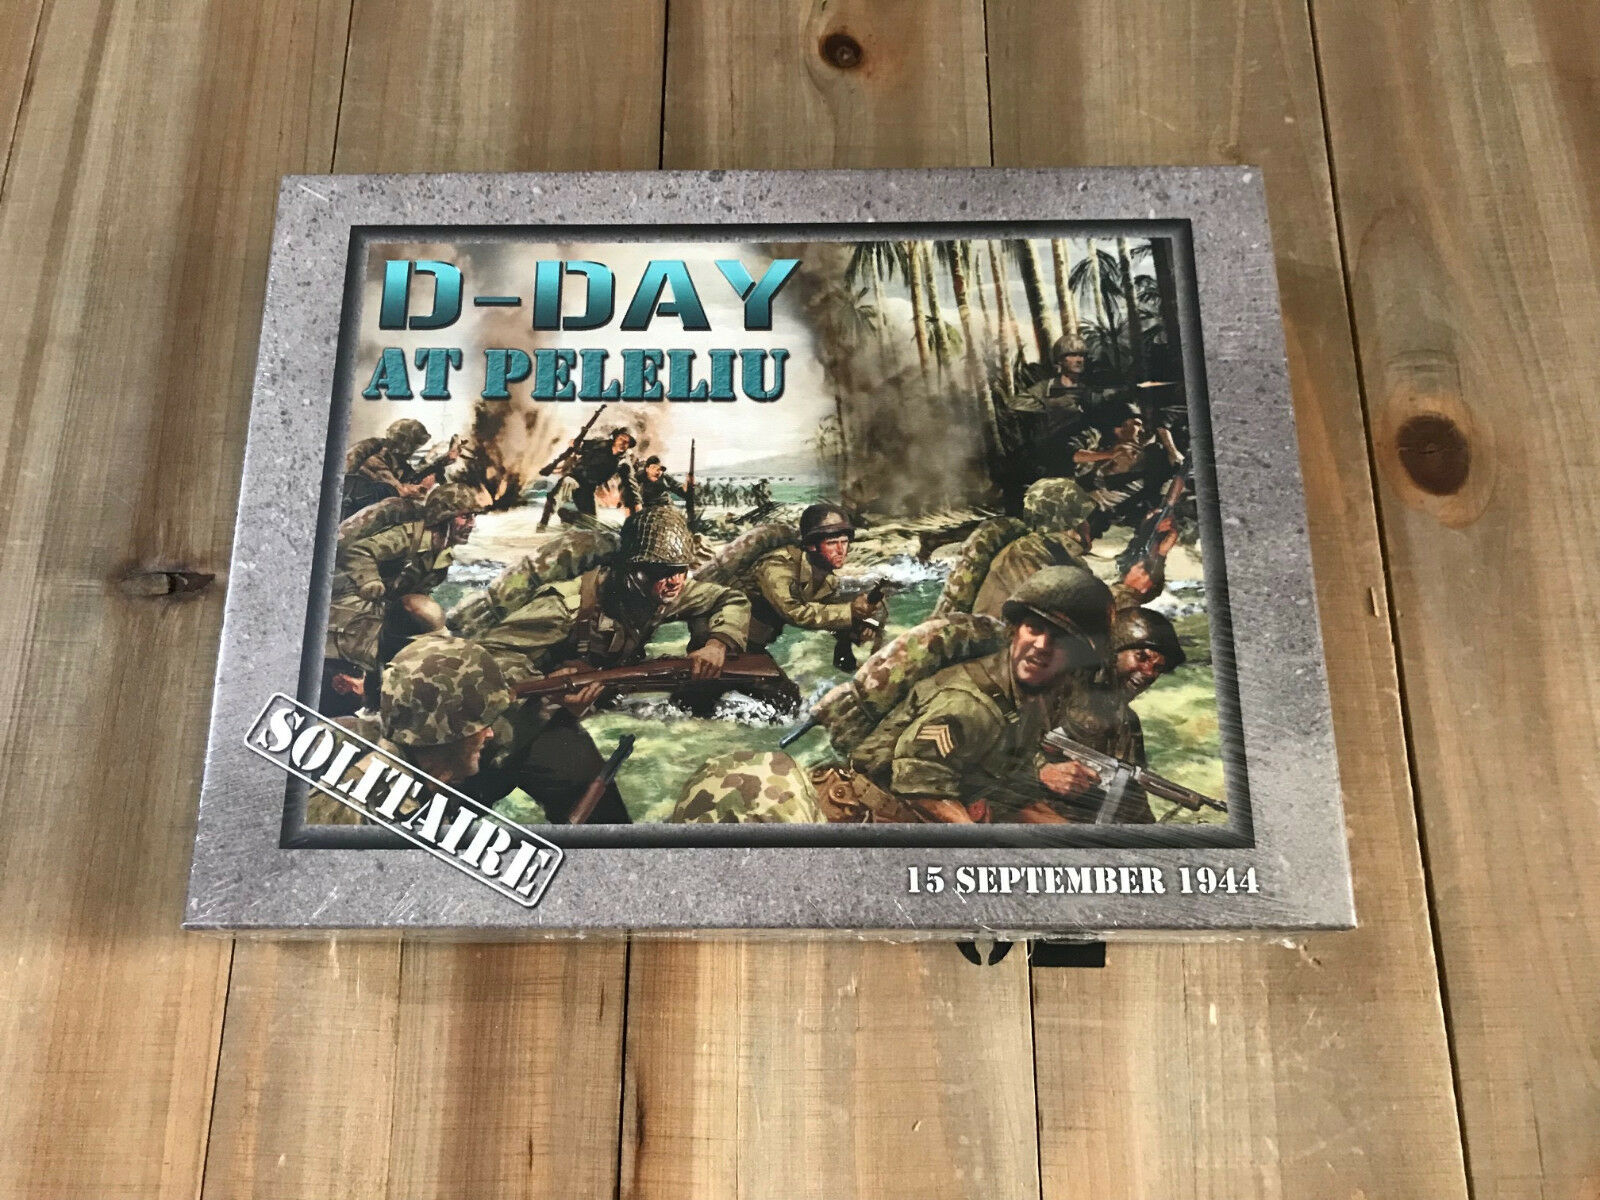 Wargame D-Day At Peleliu - Decision Games 2a Edition Tableau Montées - WWII